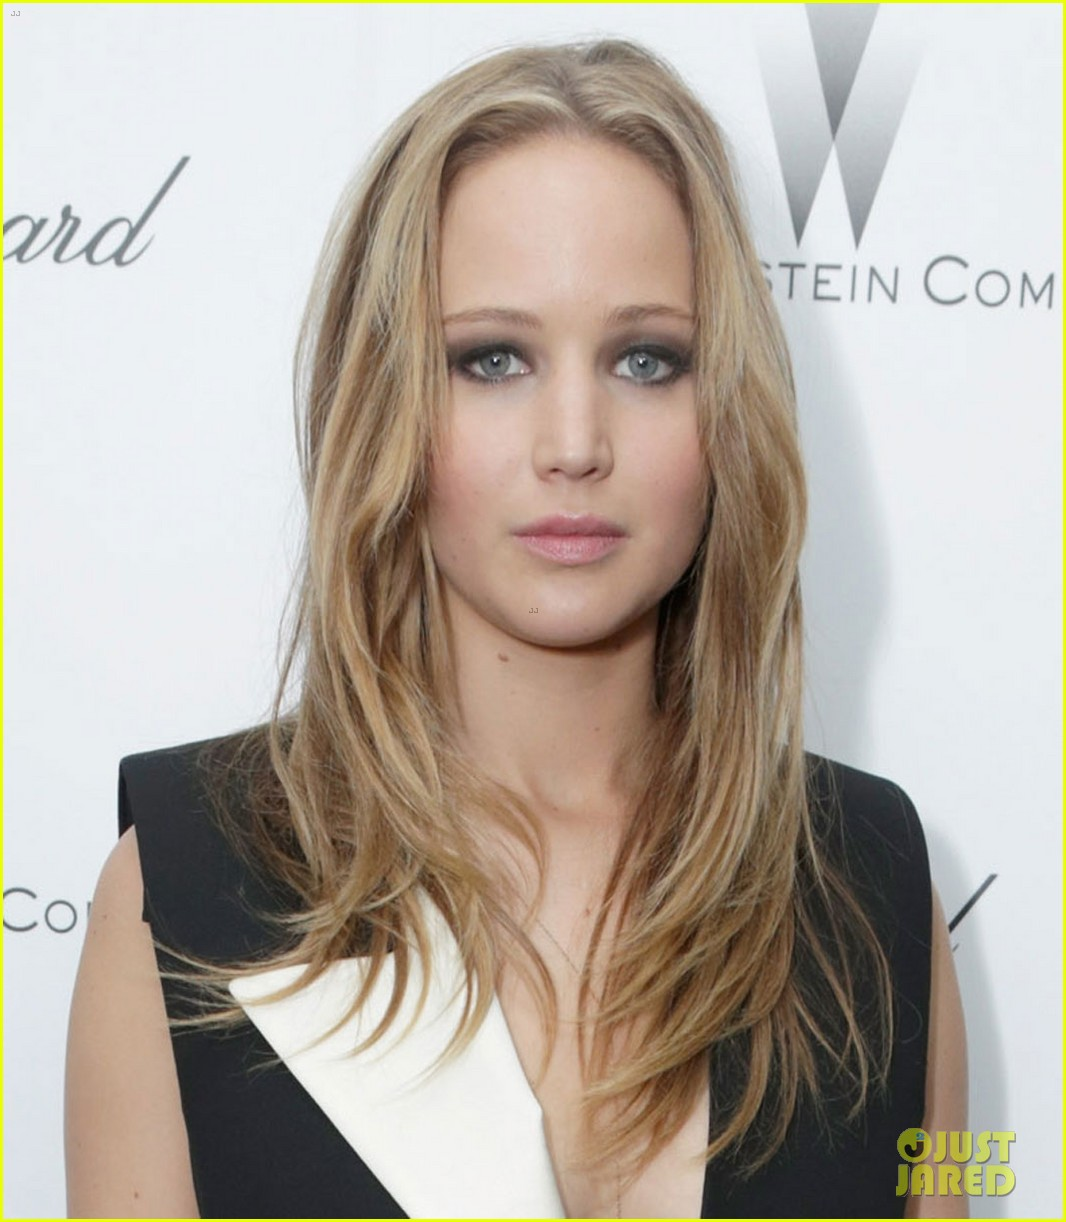 jennifer lawrence weinstein company pre oscars party 2013 032818345